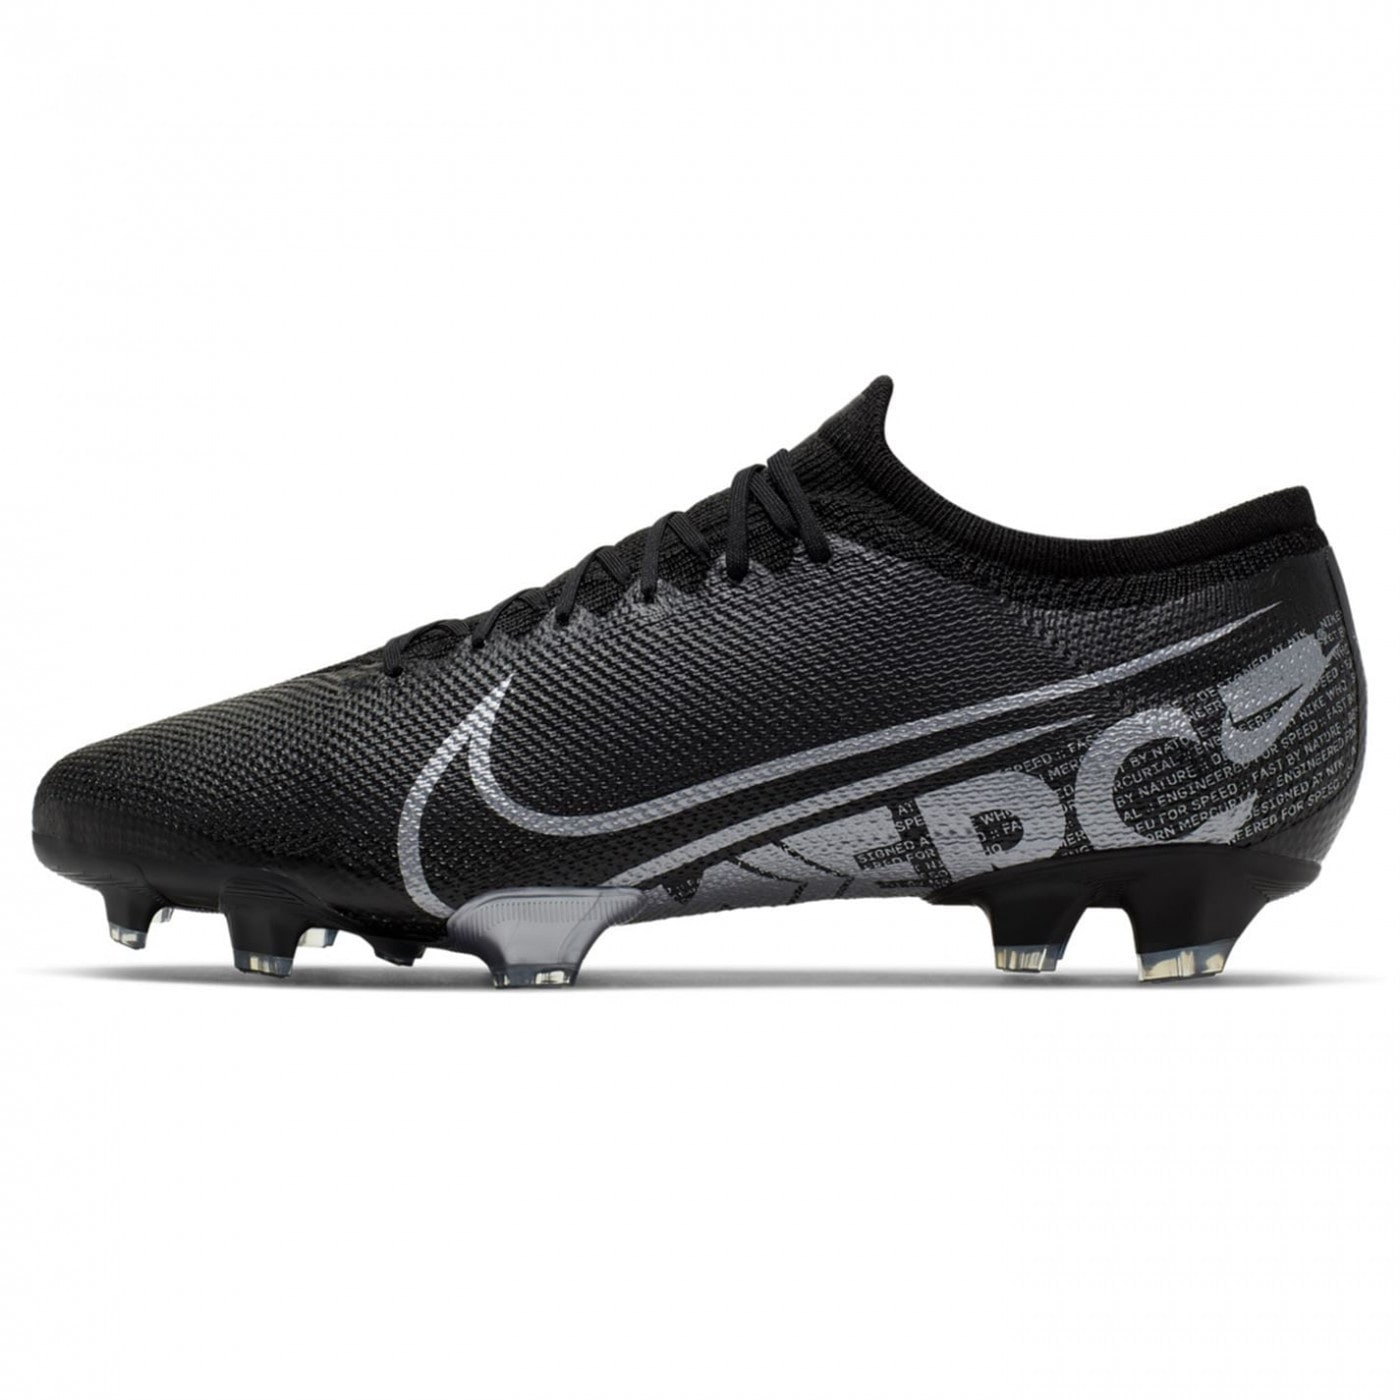 Nike Mercurial Vapor 13 Pro MDS FG Firm-Ground Soccer Cleat